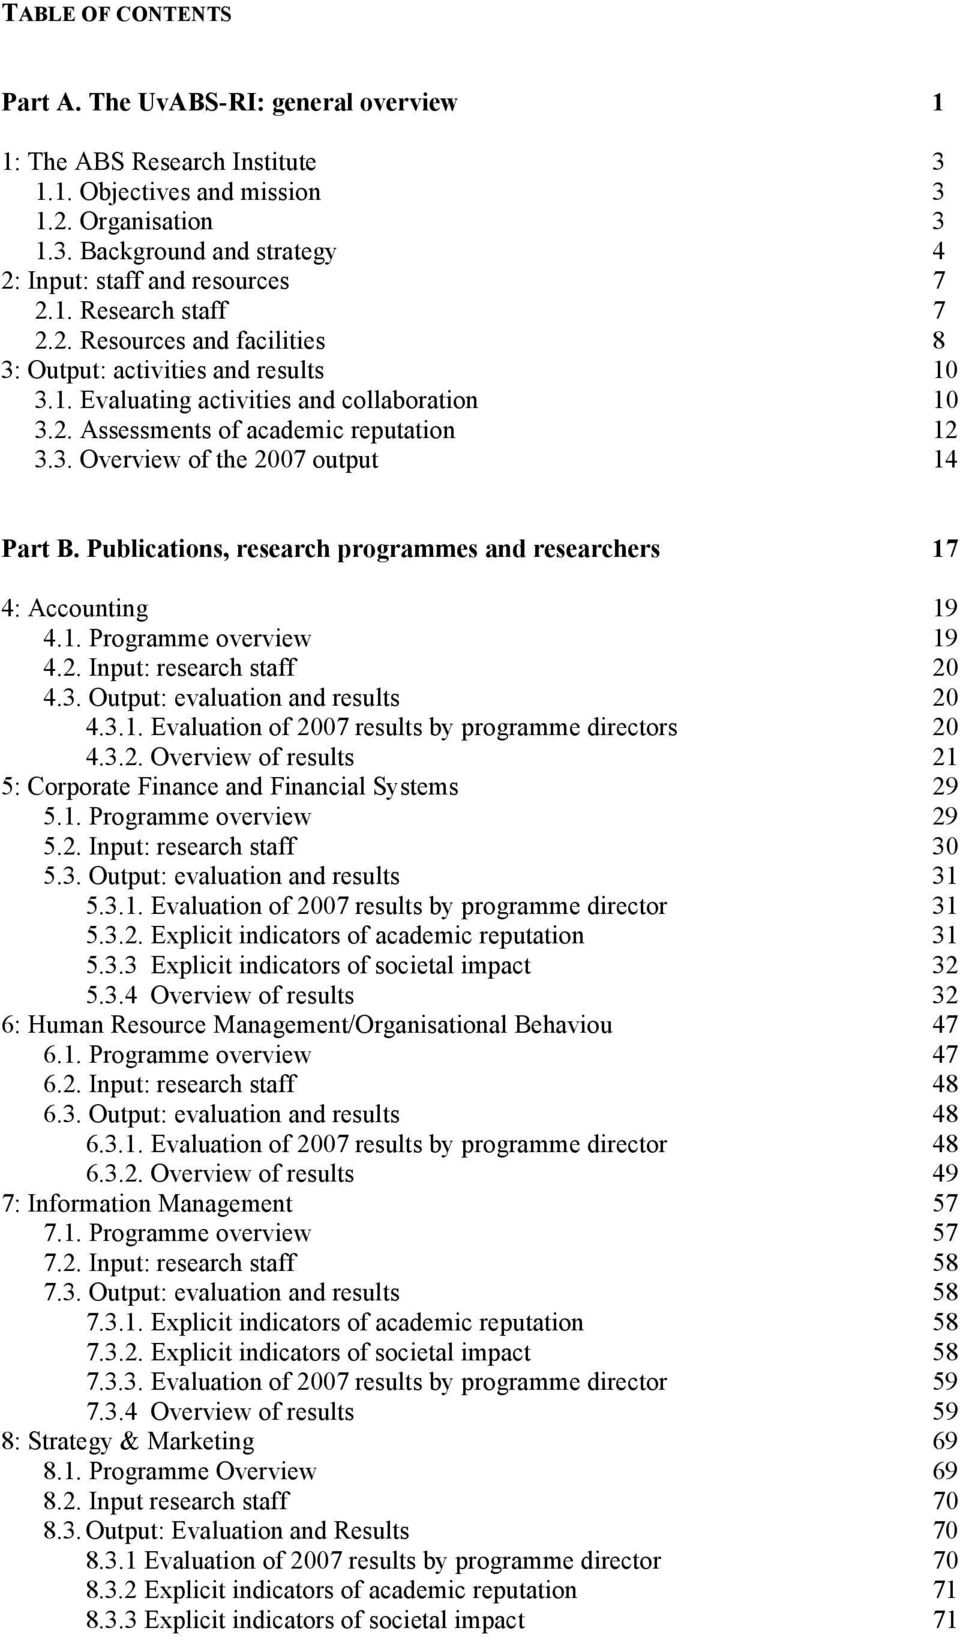 Publications, research programmes and researchers 17 4: Accounting 19 4.1. Programme overview 19 4.2. Input: research staff 20 4.3. Output: evaluation and results 20 4.3.1. Evaluation of 2007 results by programme directors 20 4.